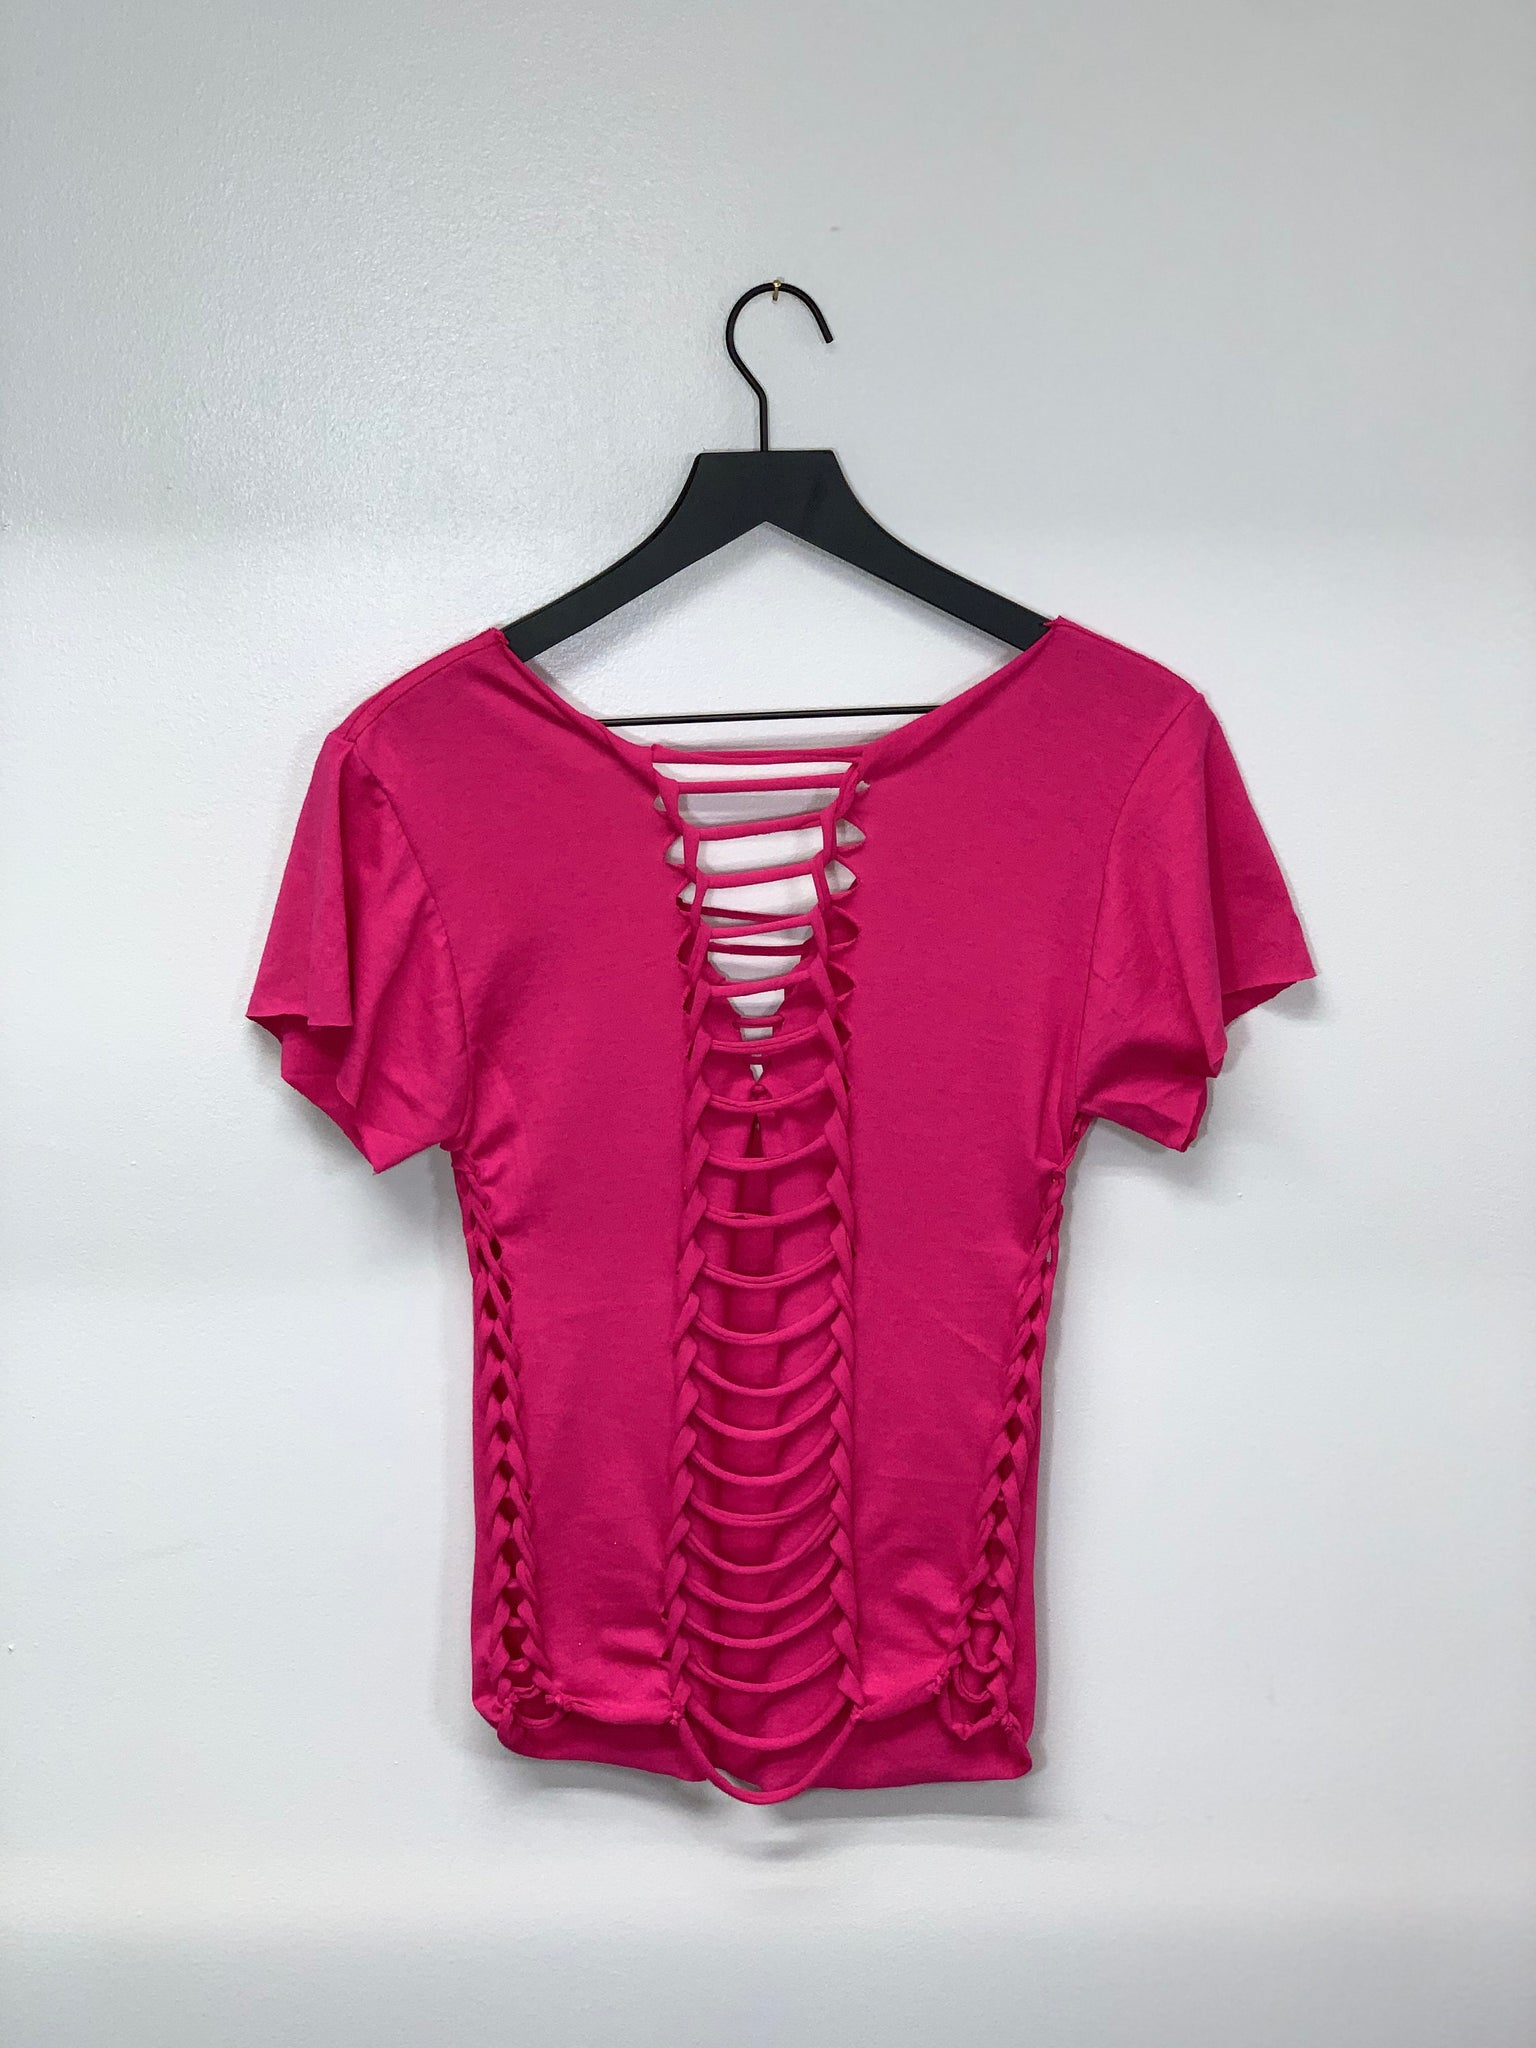 Hot Pink Snipped T-shirt by SnipTease V-neck Cut and Braided